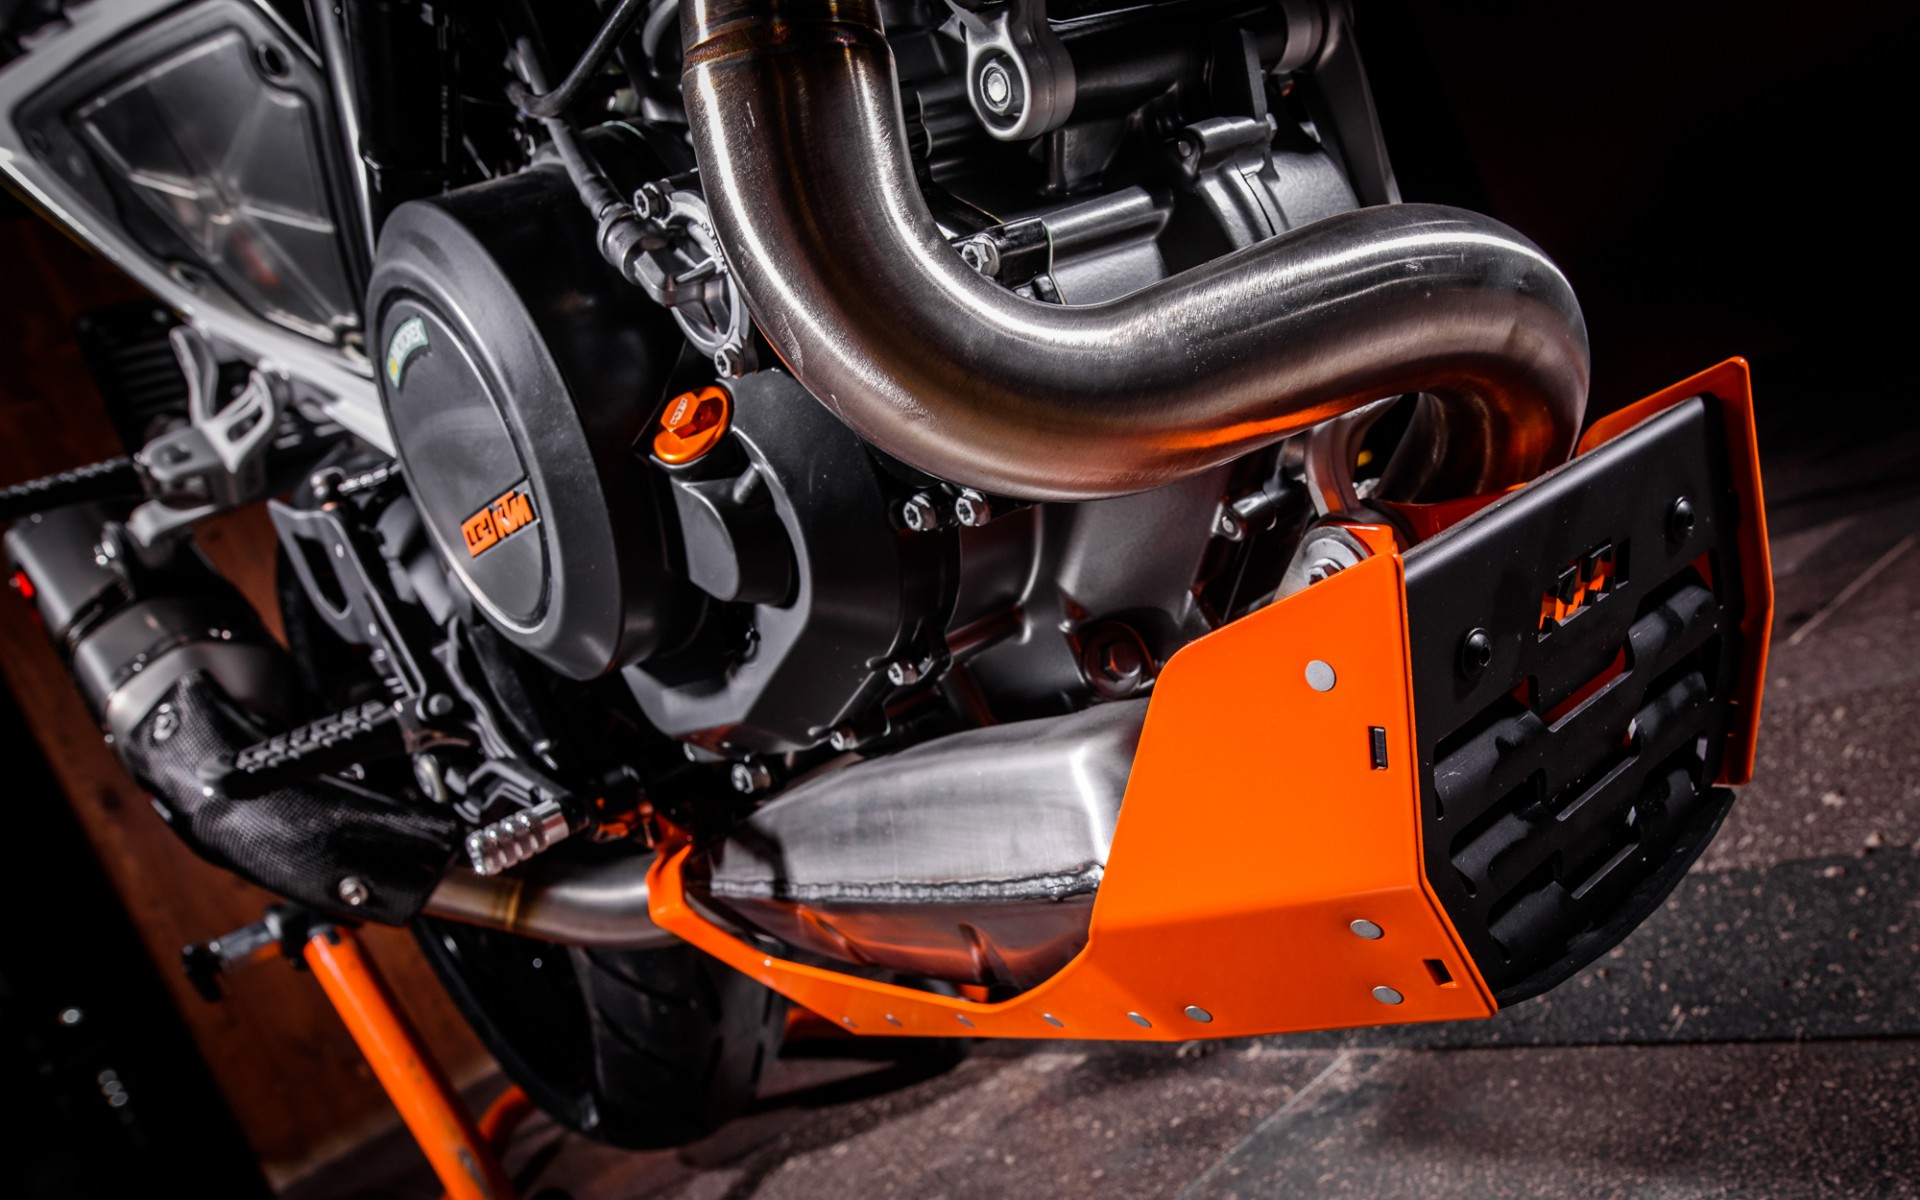 Ktm 690 Duke Powerparts Edition 2016 Rok Bagoro